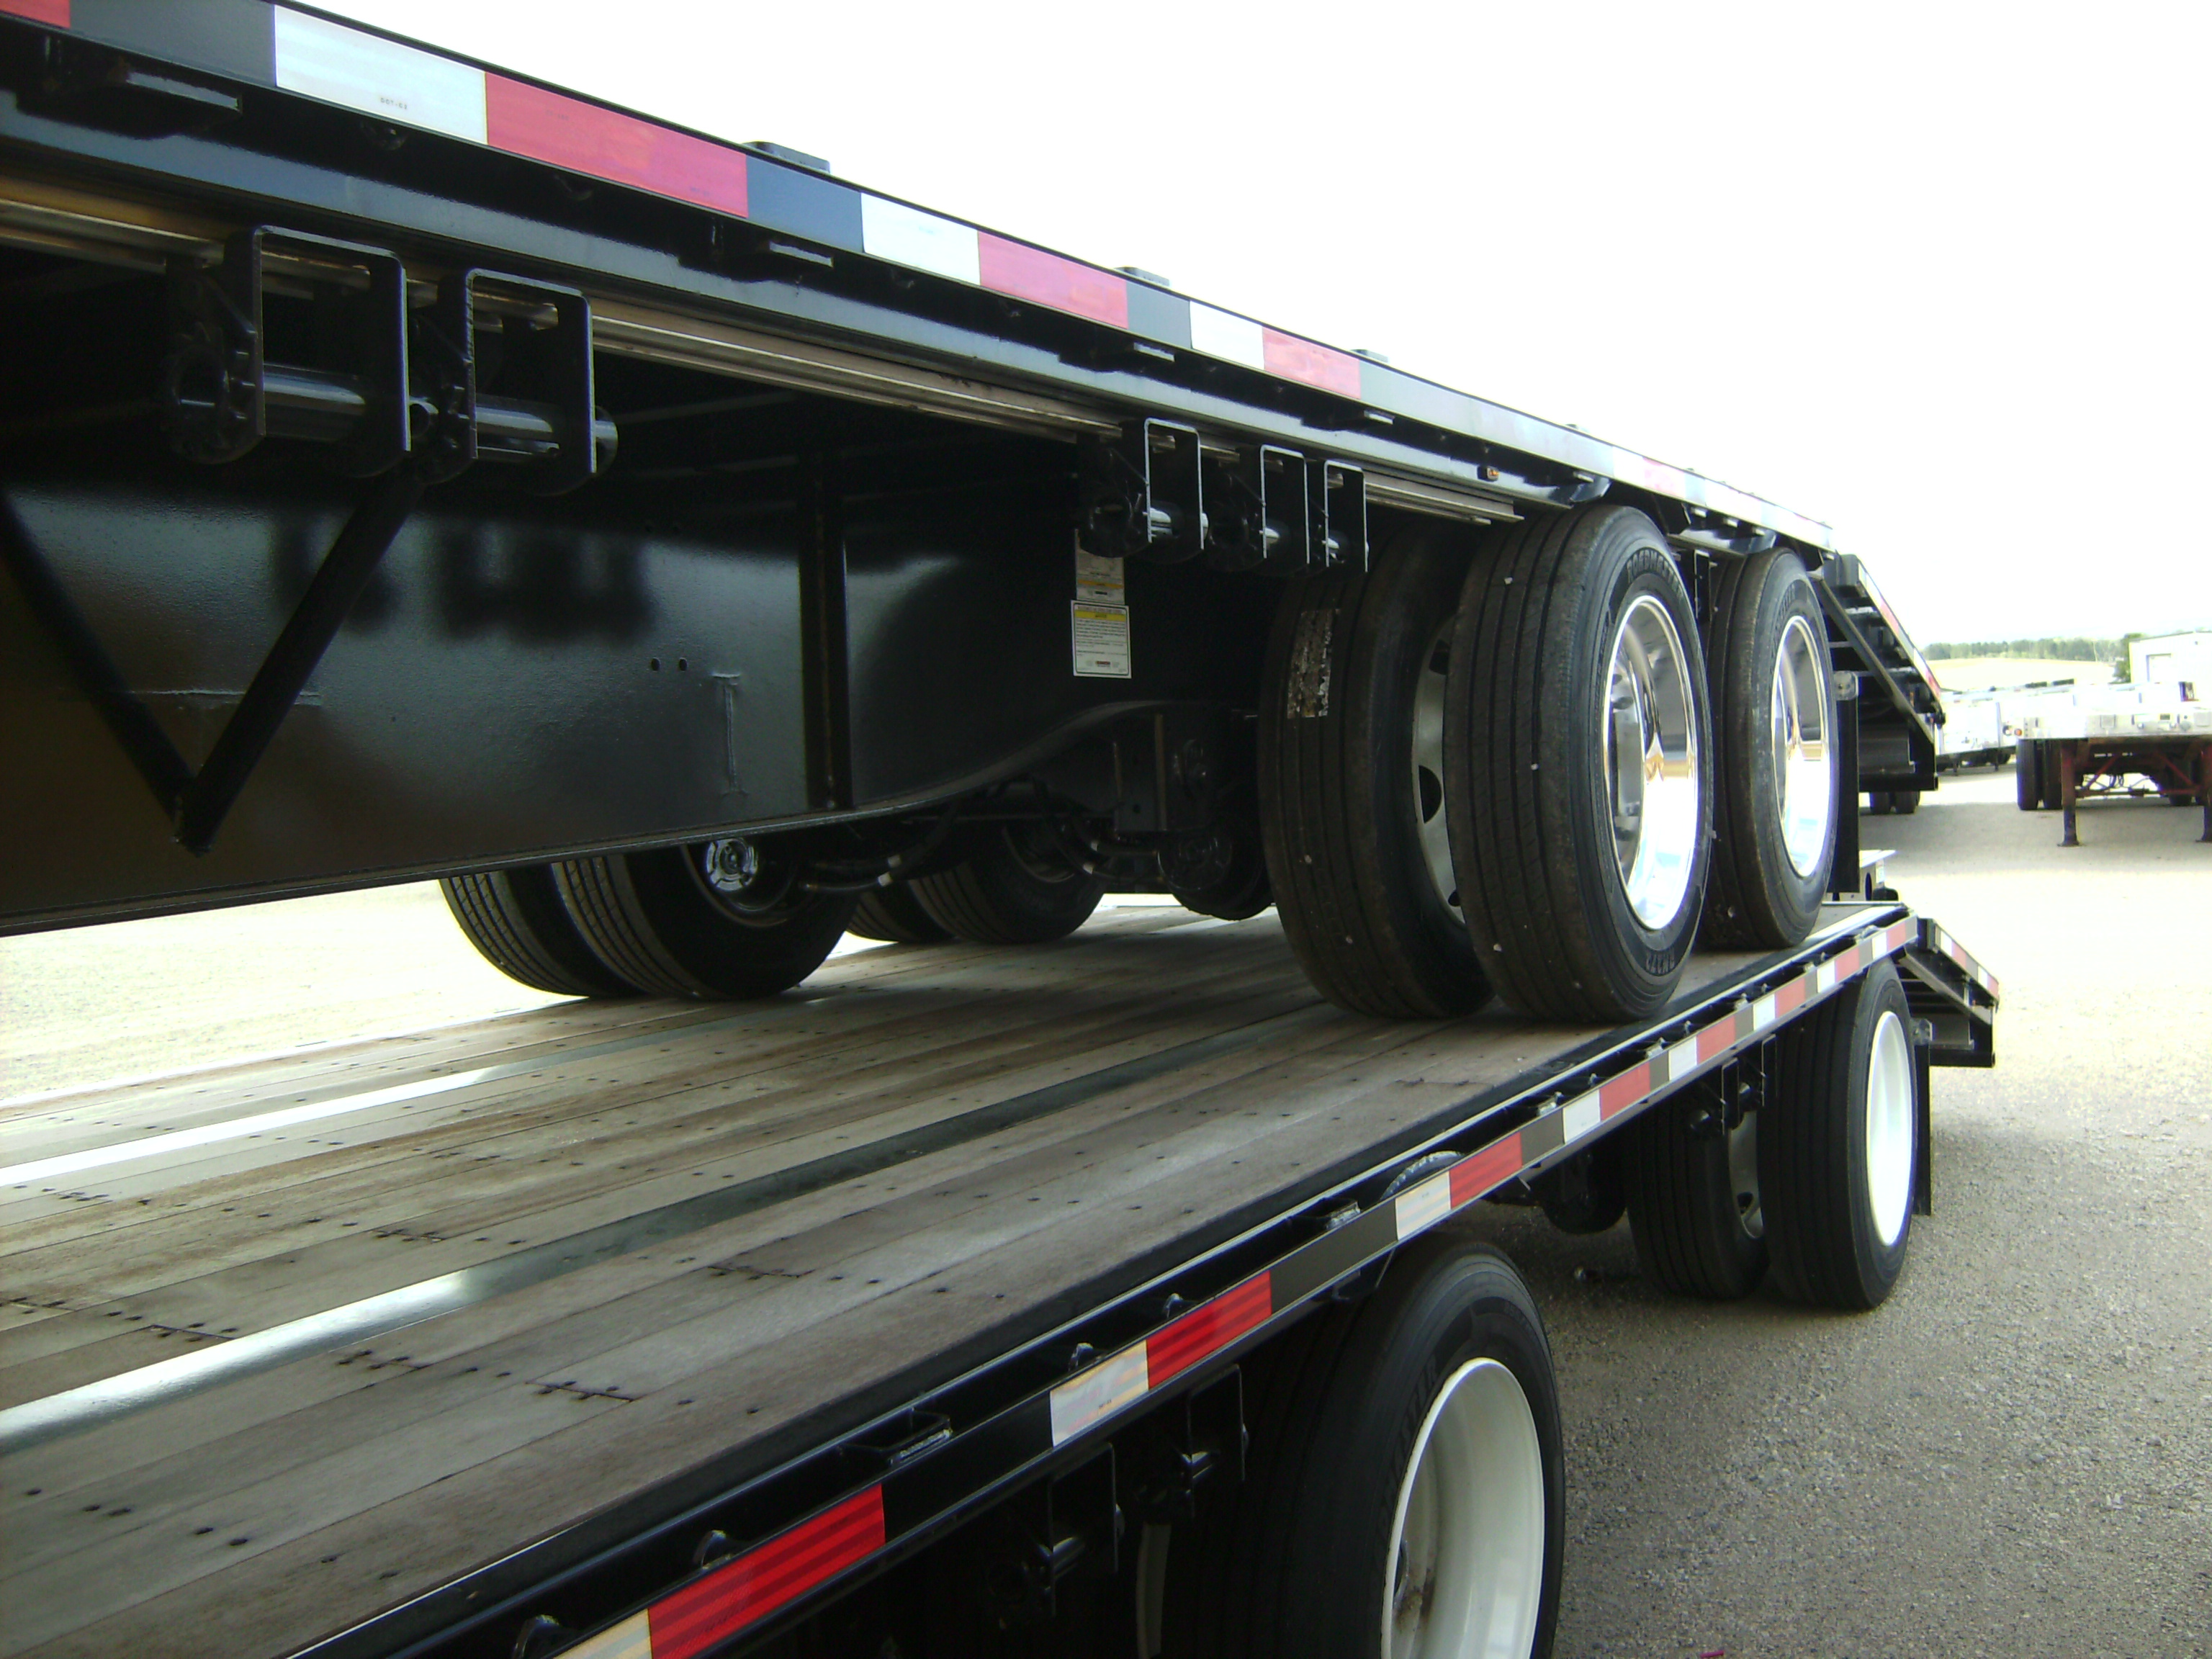 http://www.semitrailersalesandleasing.com/image/cache/2018_Transcraft_48x102_dropdeck_w_ramps_003.JPG Image